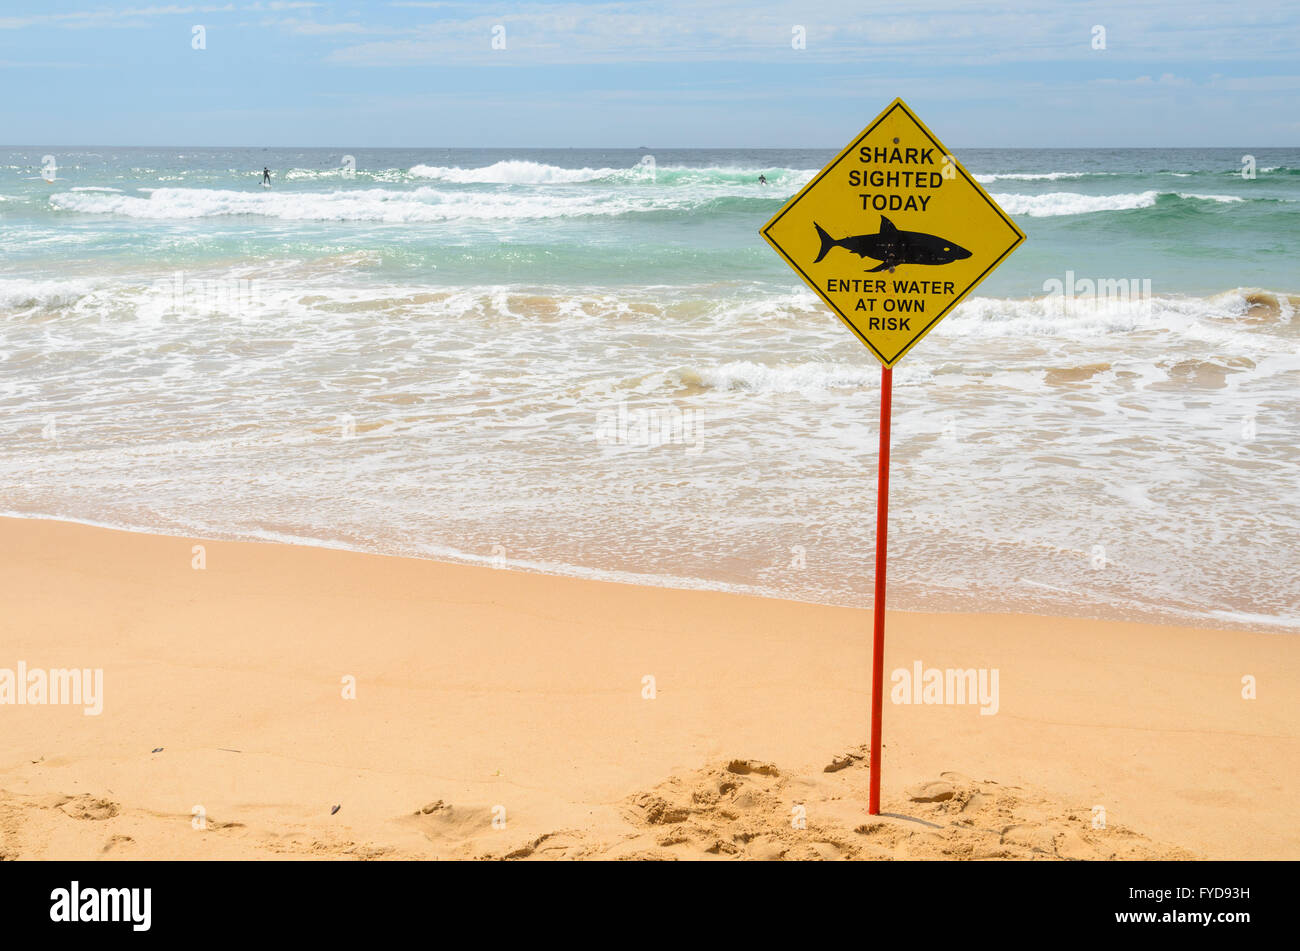 Shark Sighting sign at Manly Beach, Sydney - Stock Image